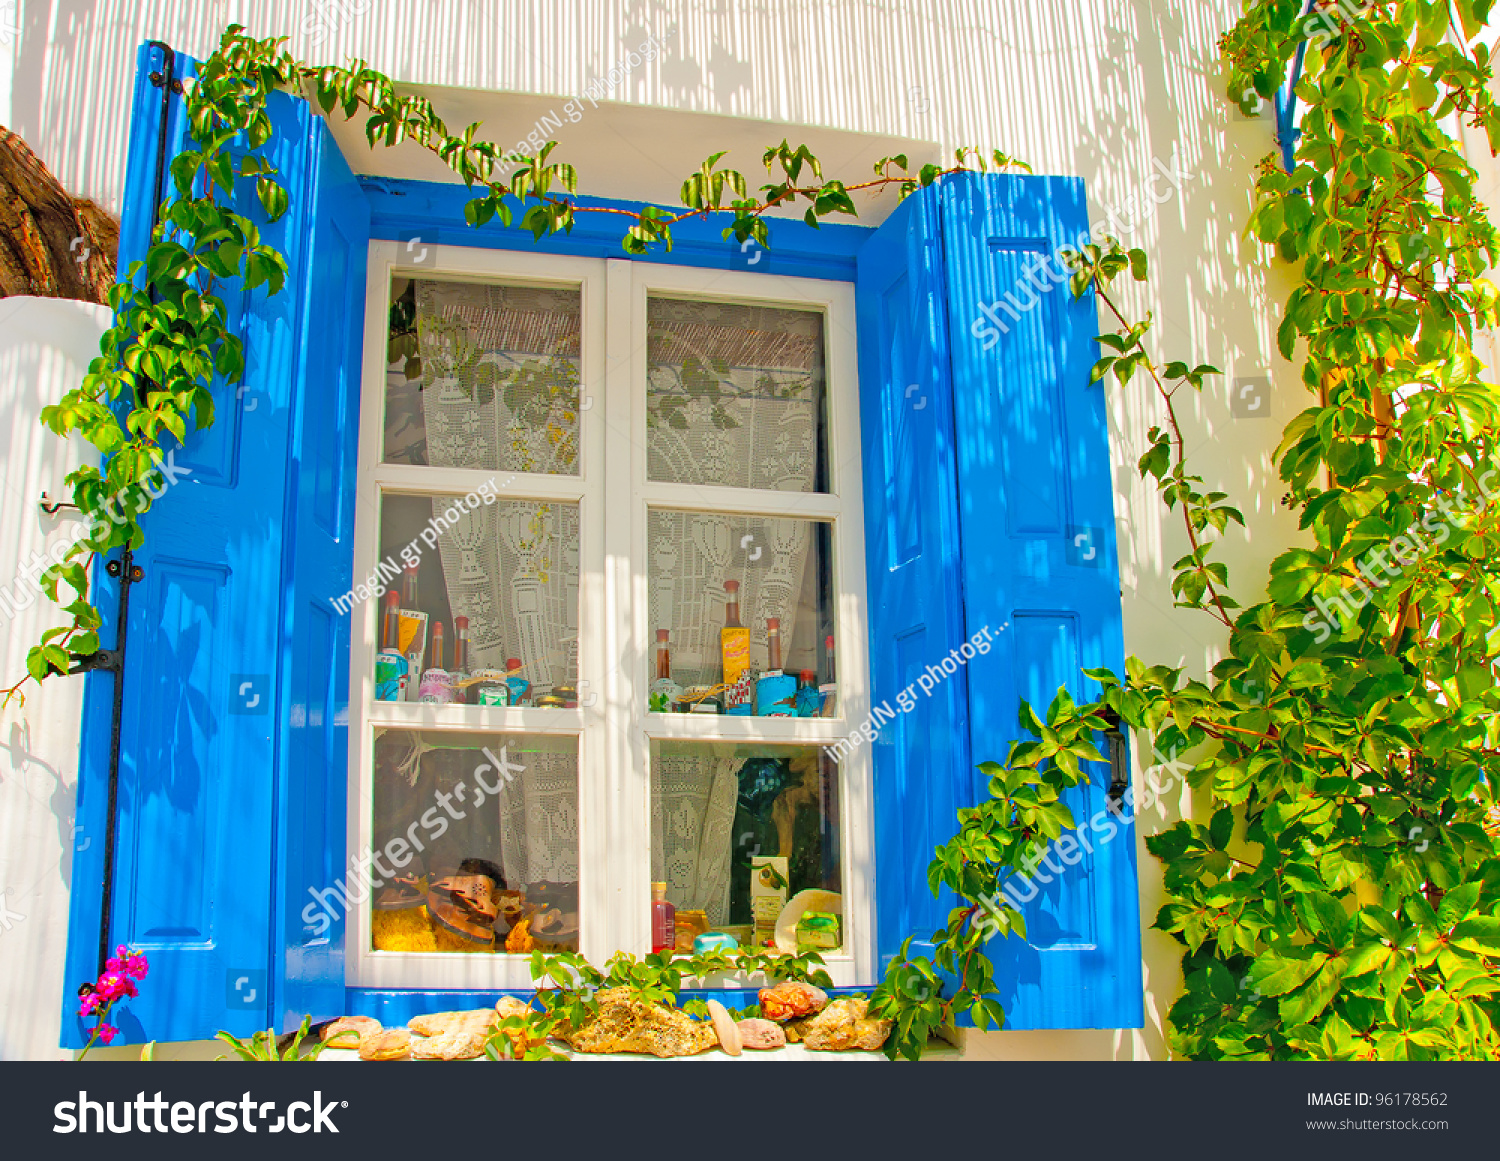 Old beautiful traditional house in chora the capital of amorgos island - Beautiful Wooden Blue Colored Window In An Old House In Chora Of Amorgos Island In Greece